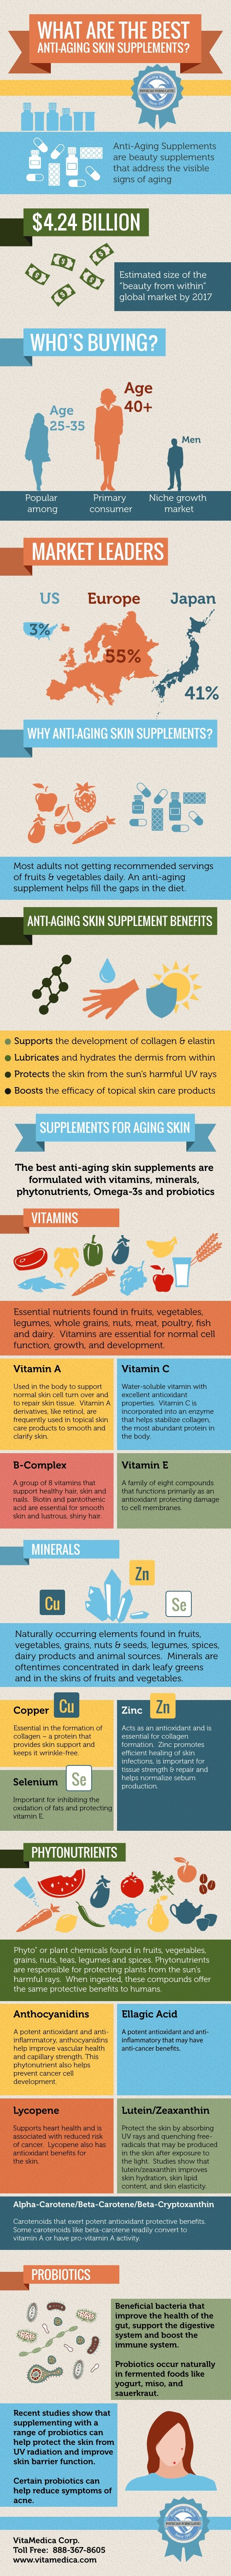 What Are The Best Anti Aging Supplements?  #Infographic